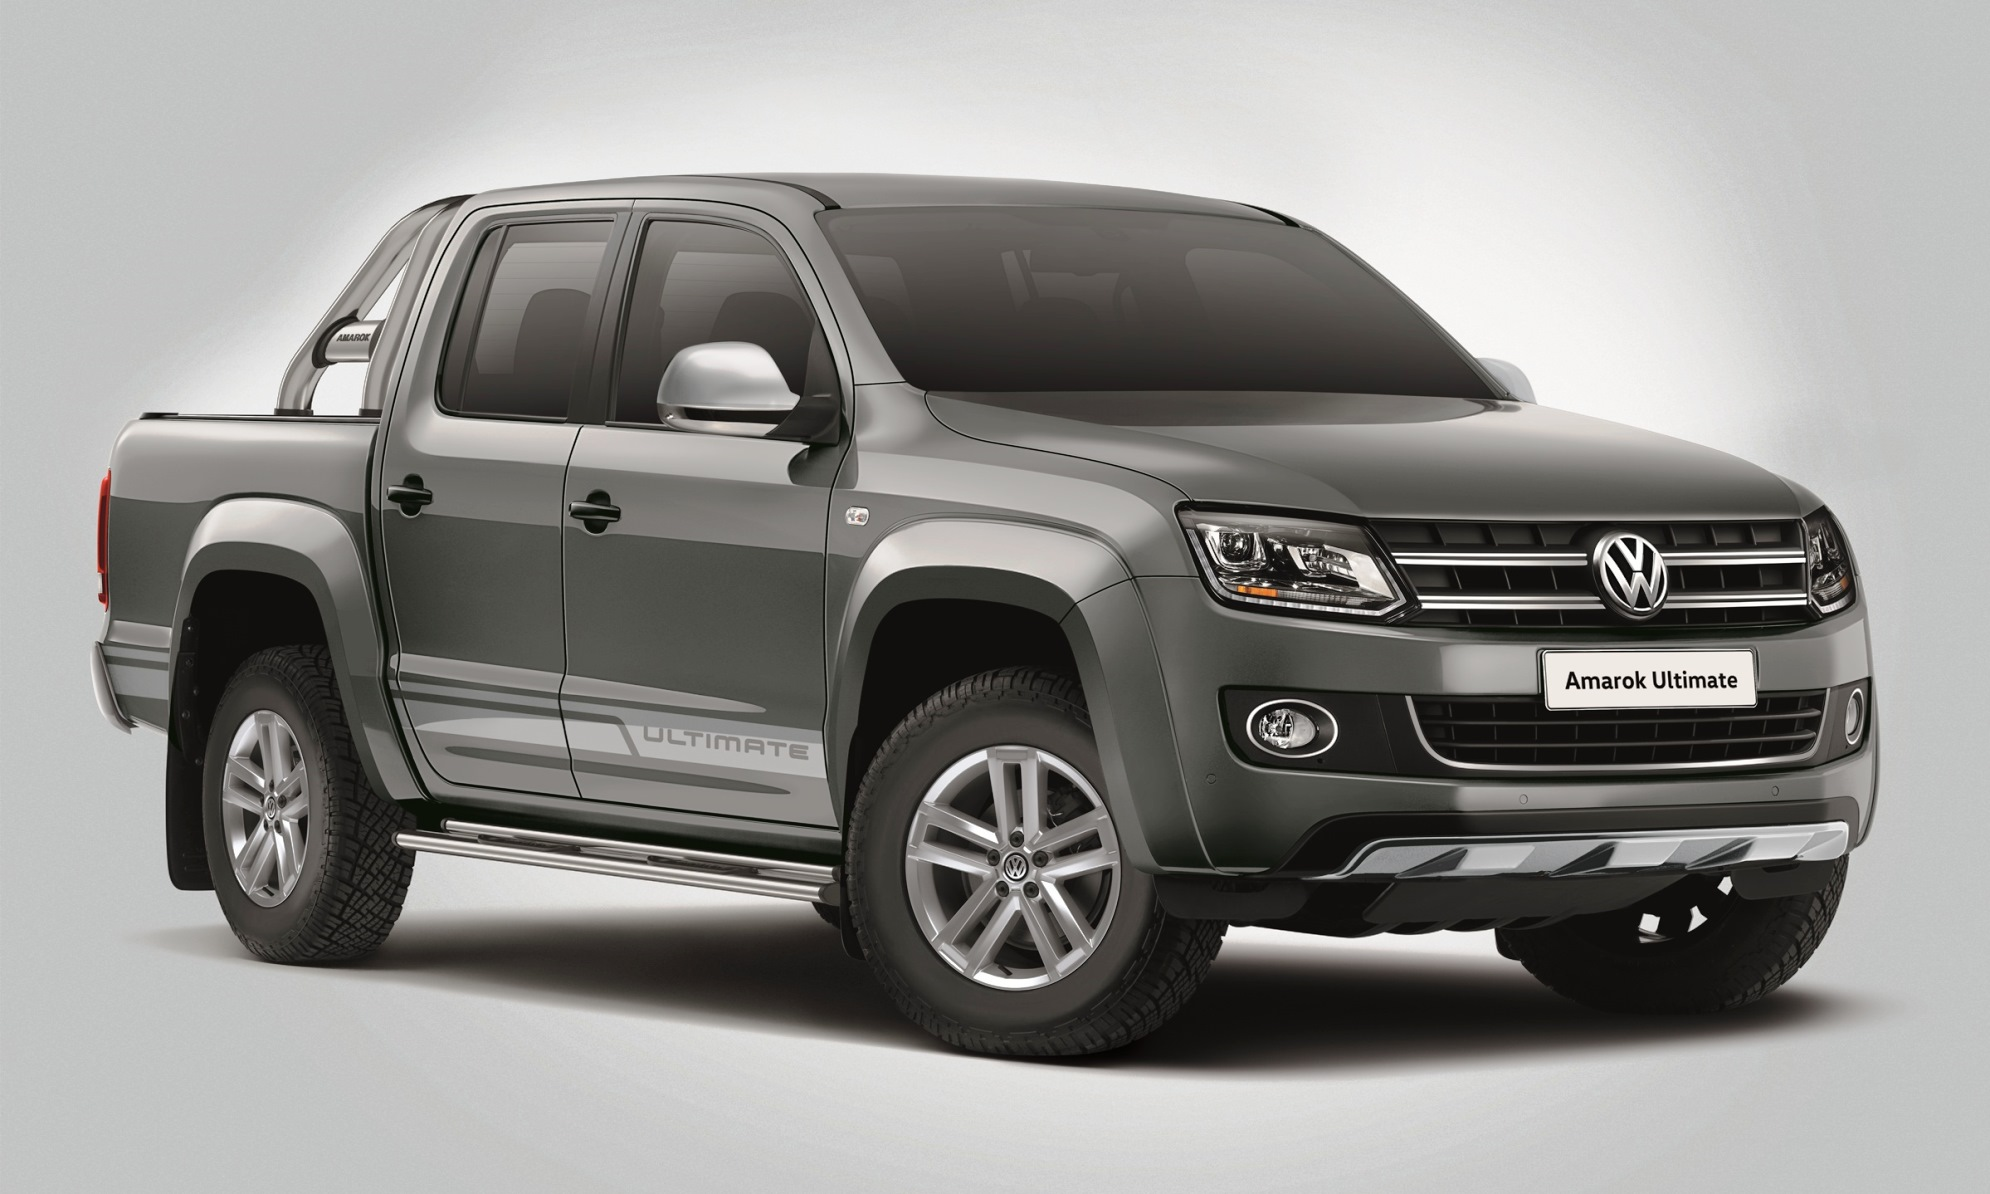 VW Amarok 2.0 BiTDi Ultimate 4×4 Double Cab